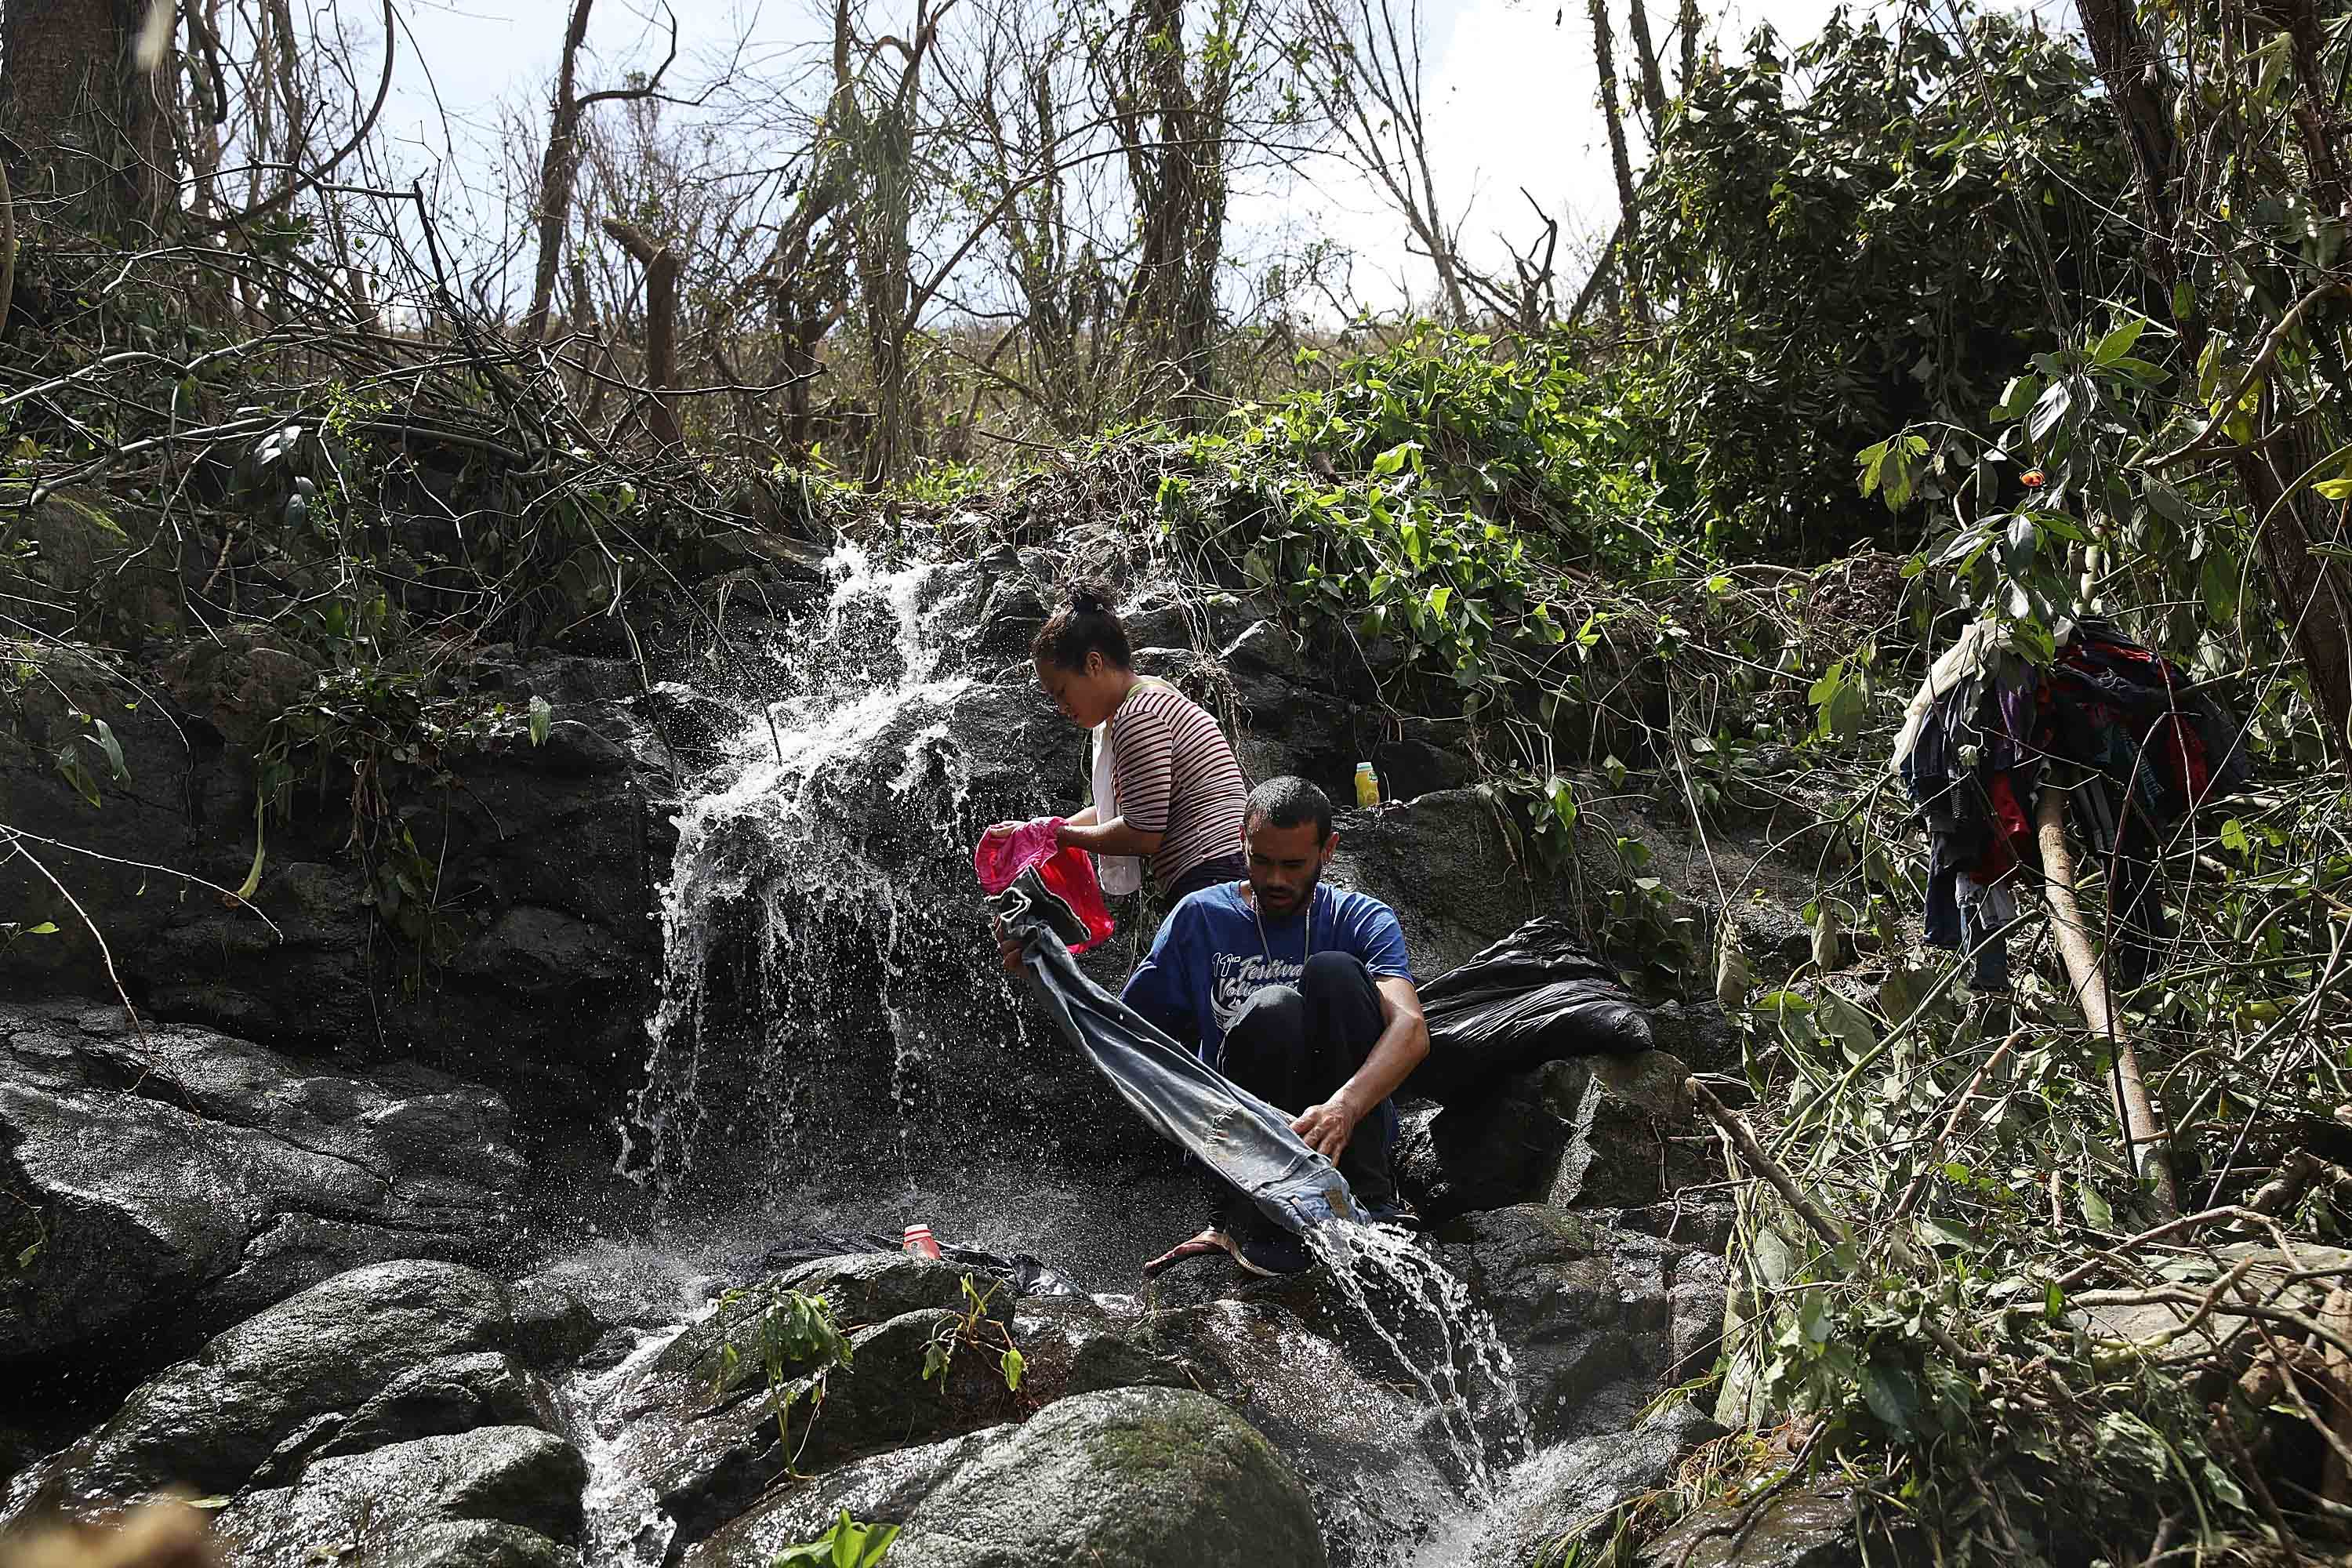 AIBONITO, PUERTO RICO - SEPTEMBER 24: Danalys Luna and Edgardo Feliciano wash their clothes in a stream as people wait for the electrical and water grids to be repaired.